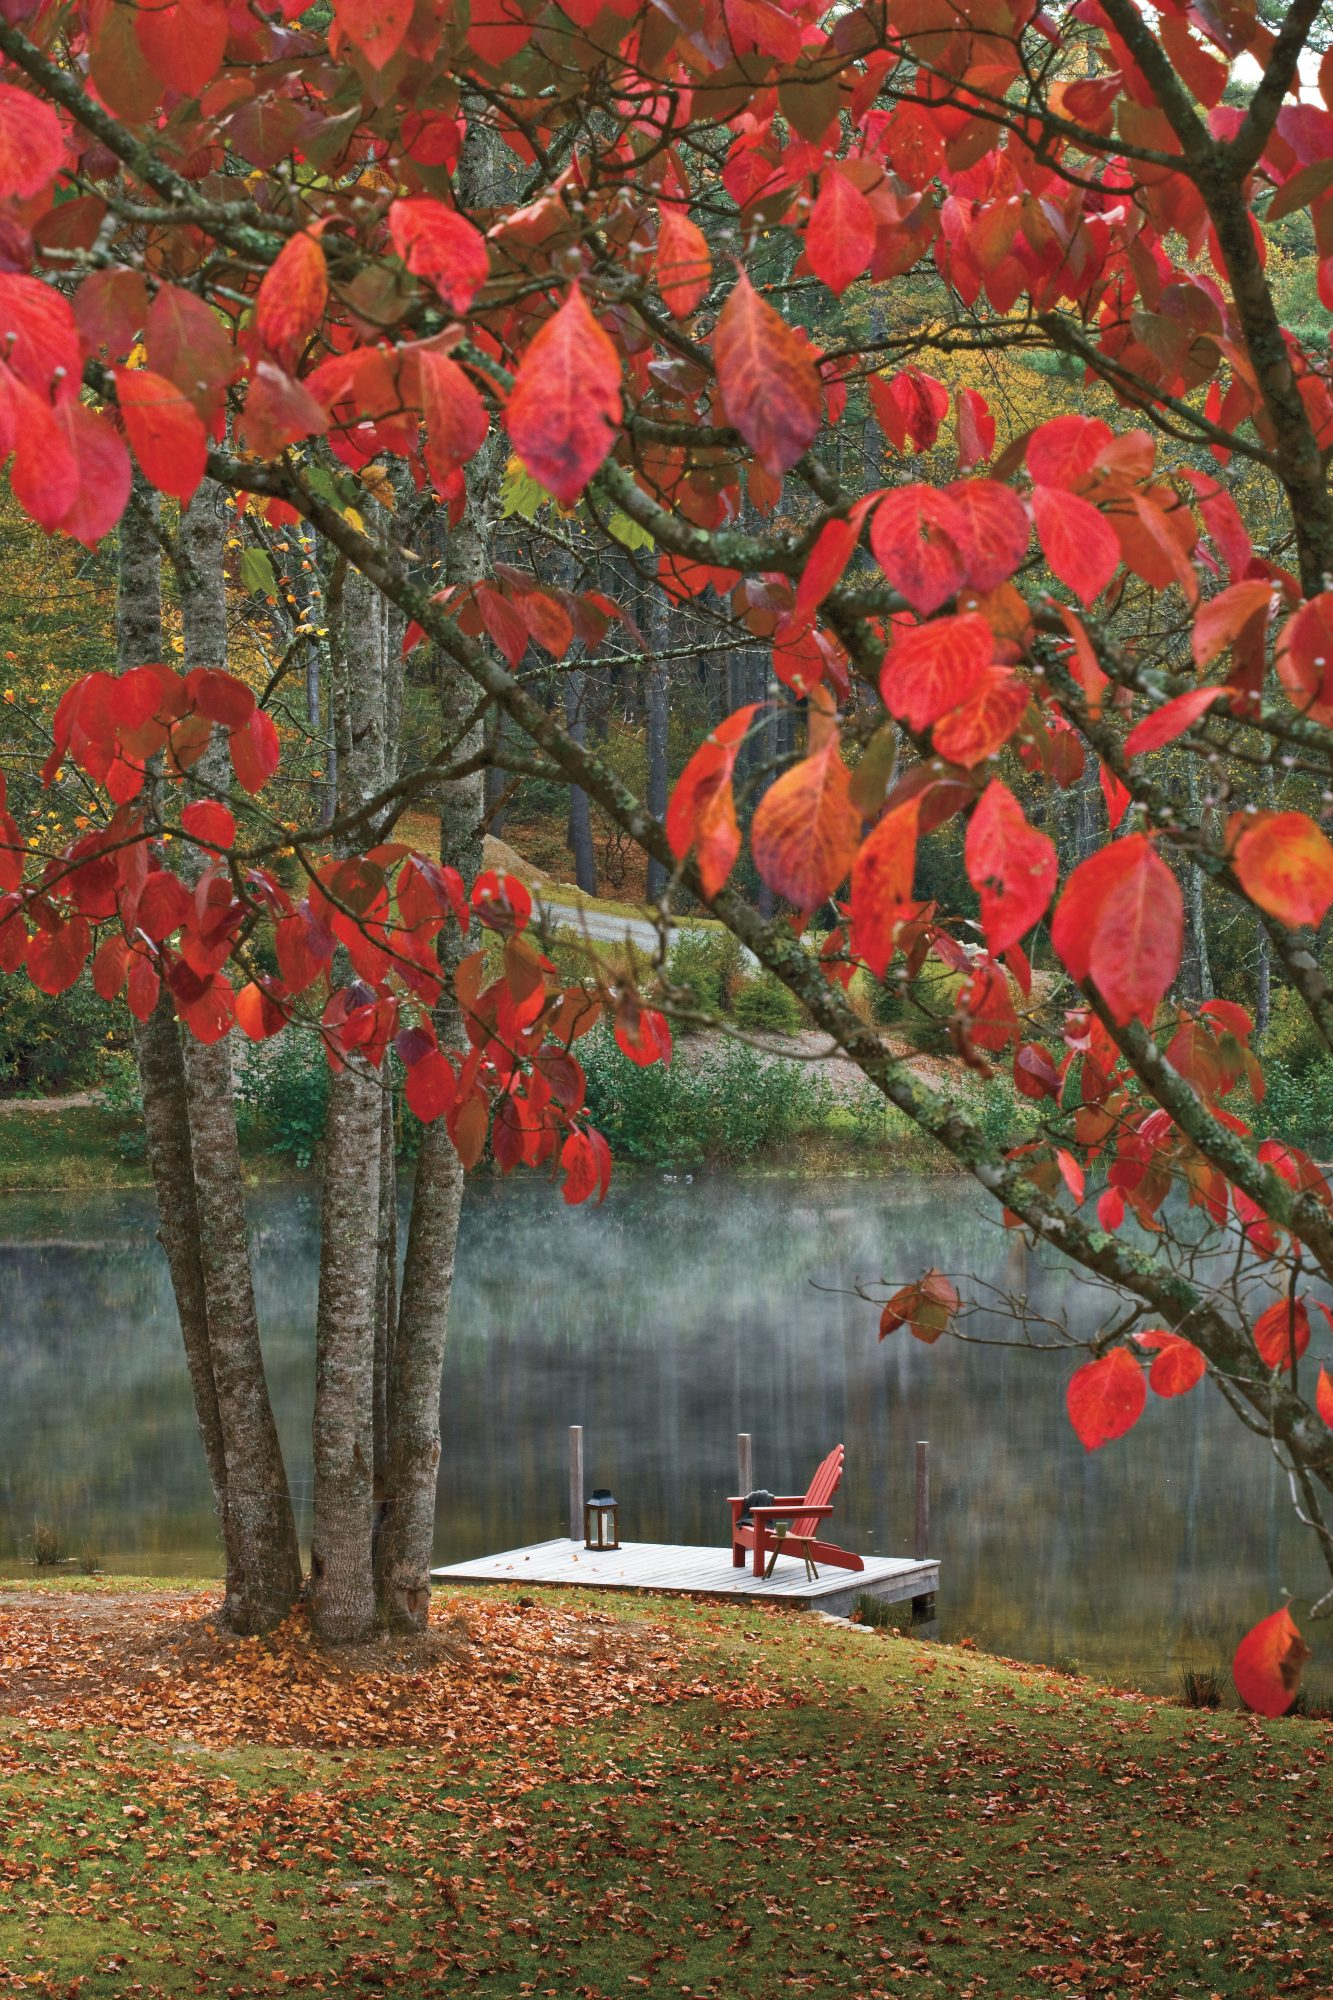 Best New Cottage: Red Chair by the Lake